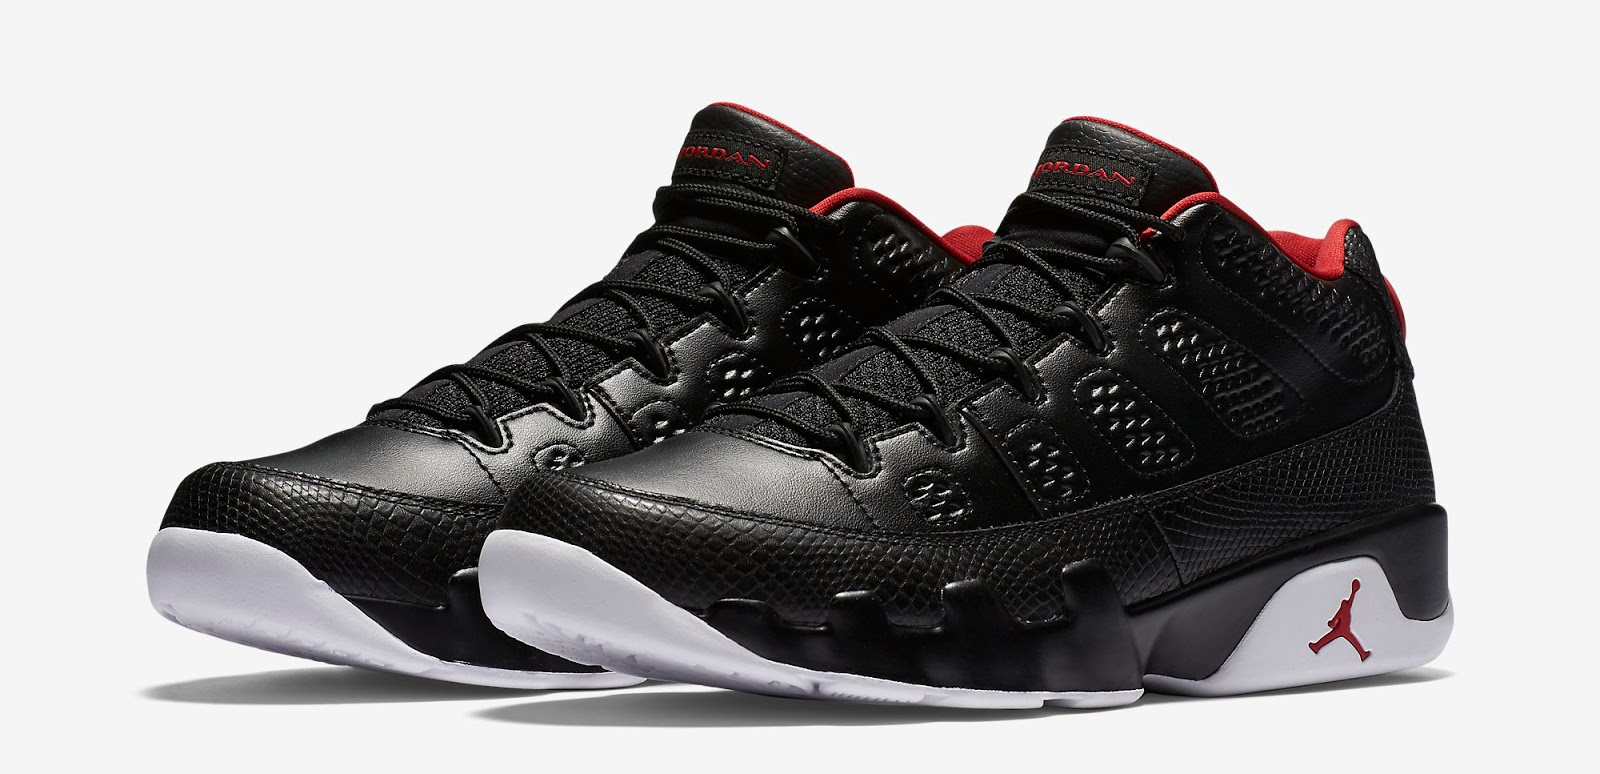 sale retailer 659f6 8e25b Air Jordan 9 Retro Low Black White-Gym Red Release Reminder